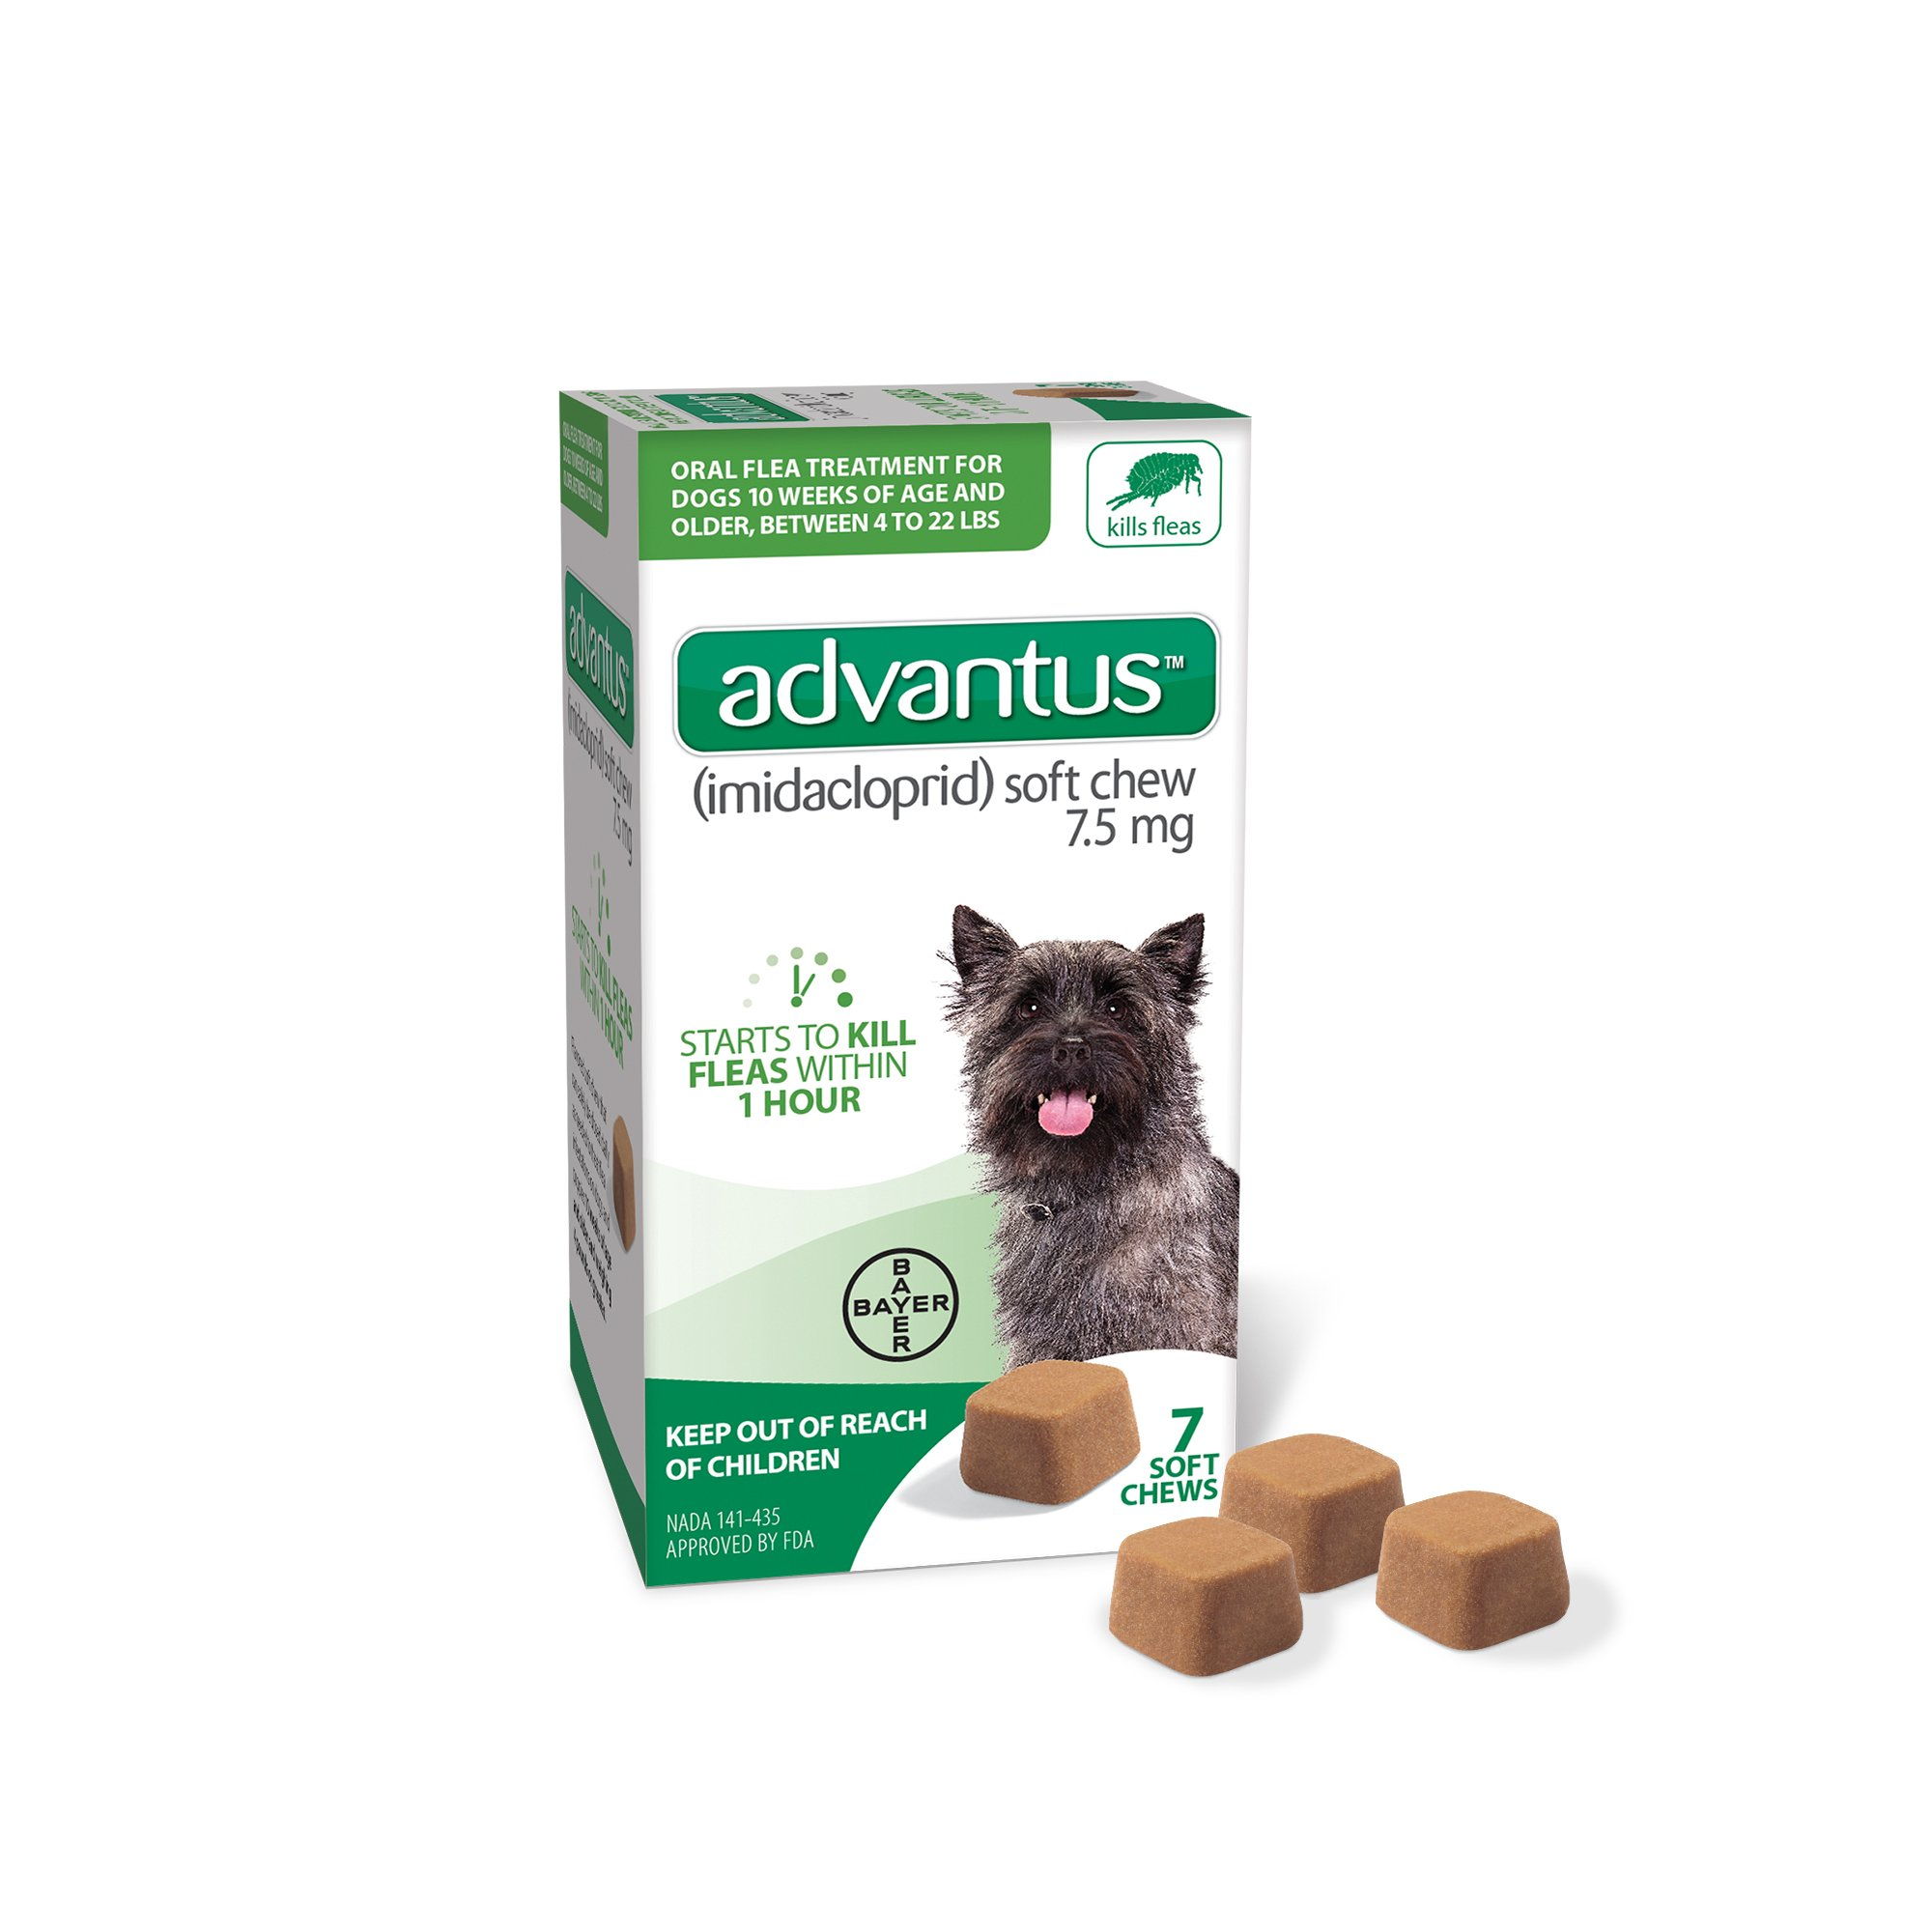 Bayer Animal Health Advantus 7 Soft Chew for Small Dog, 4 lb or Greater